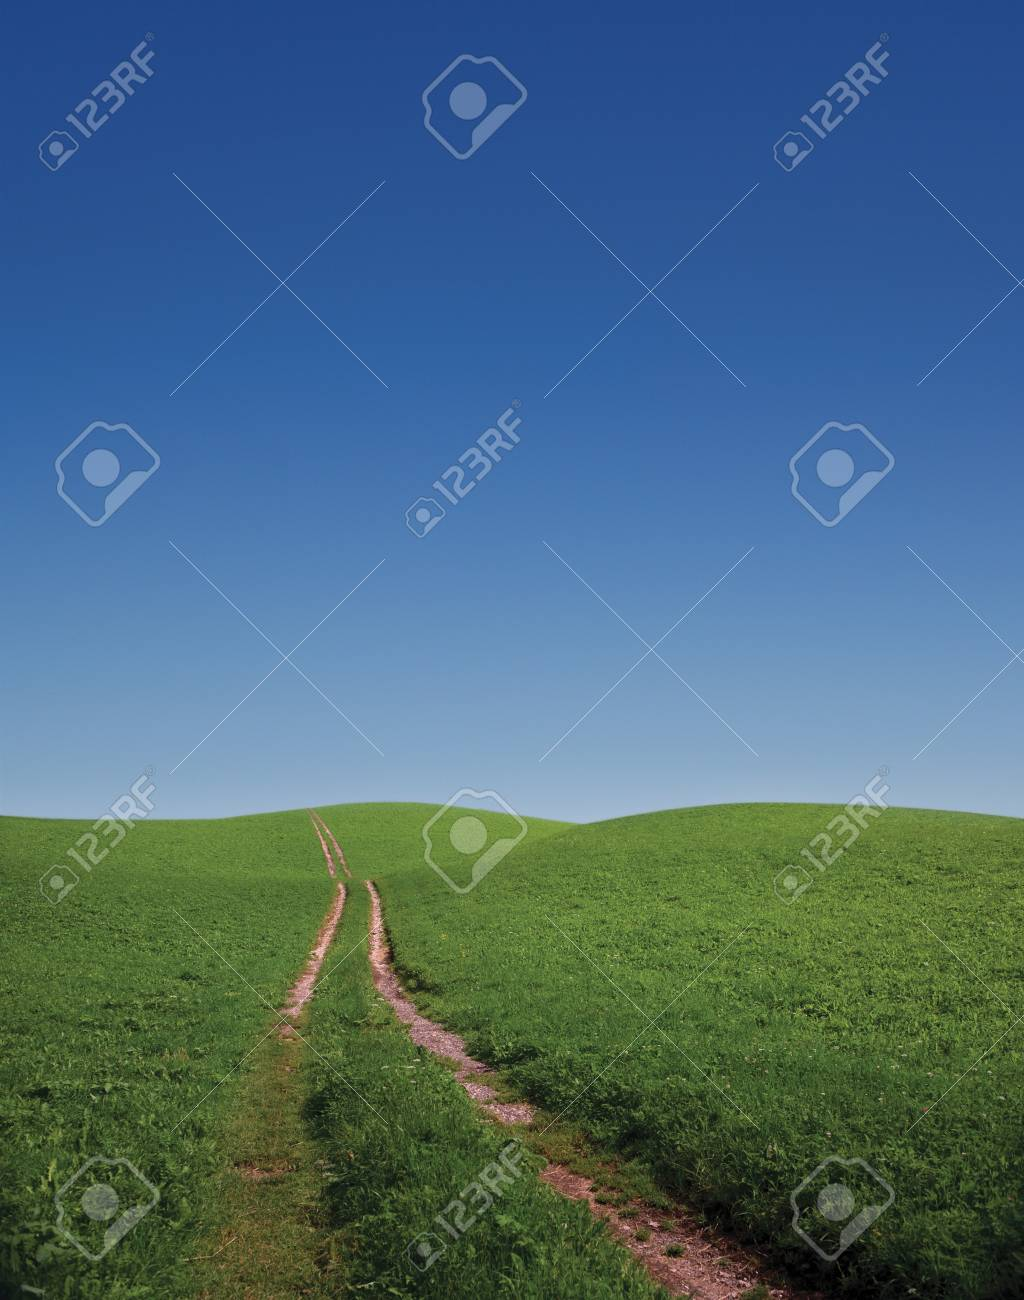 Road going through a green meadow over a crest on the horizon Stock Photo - 7049807